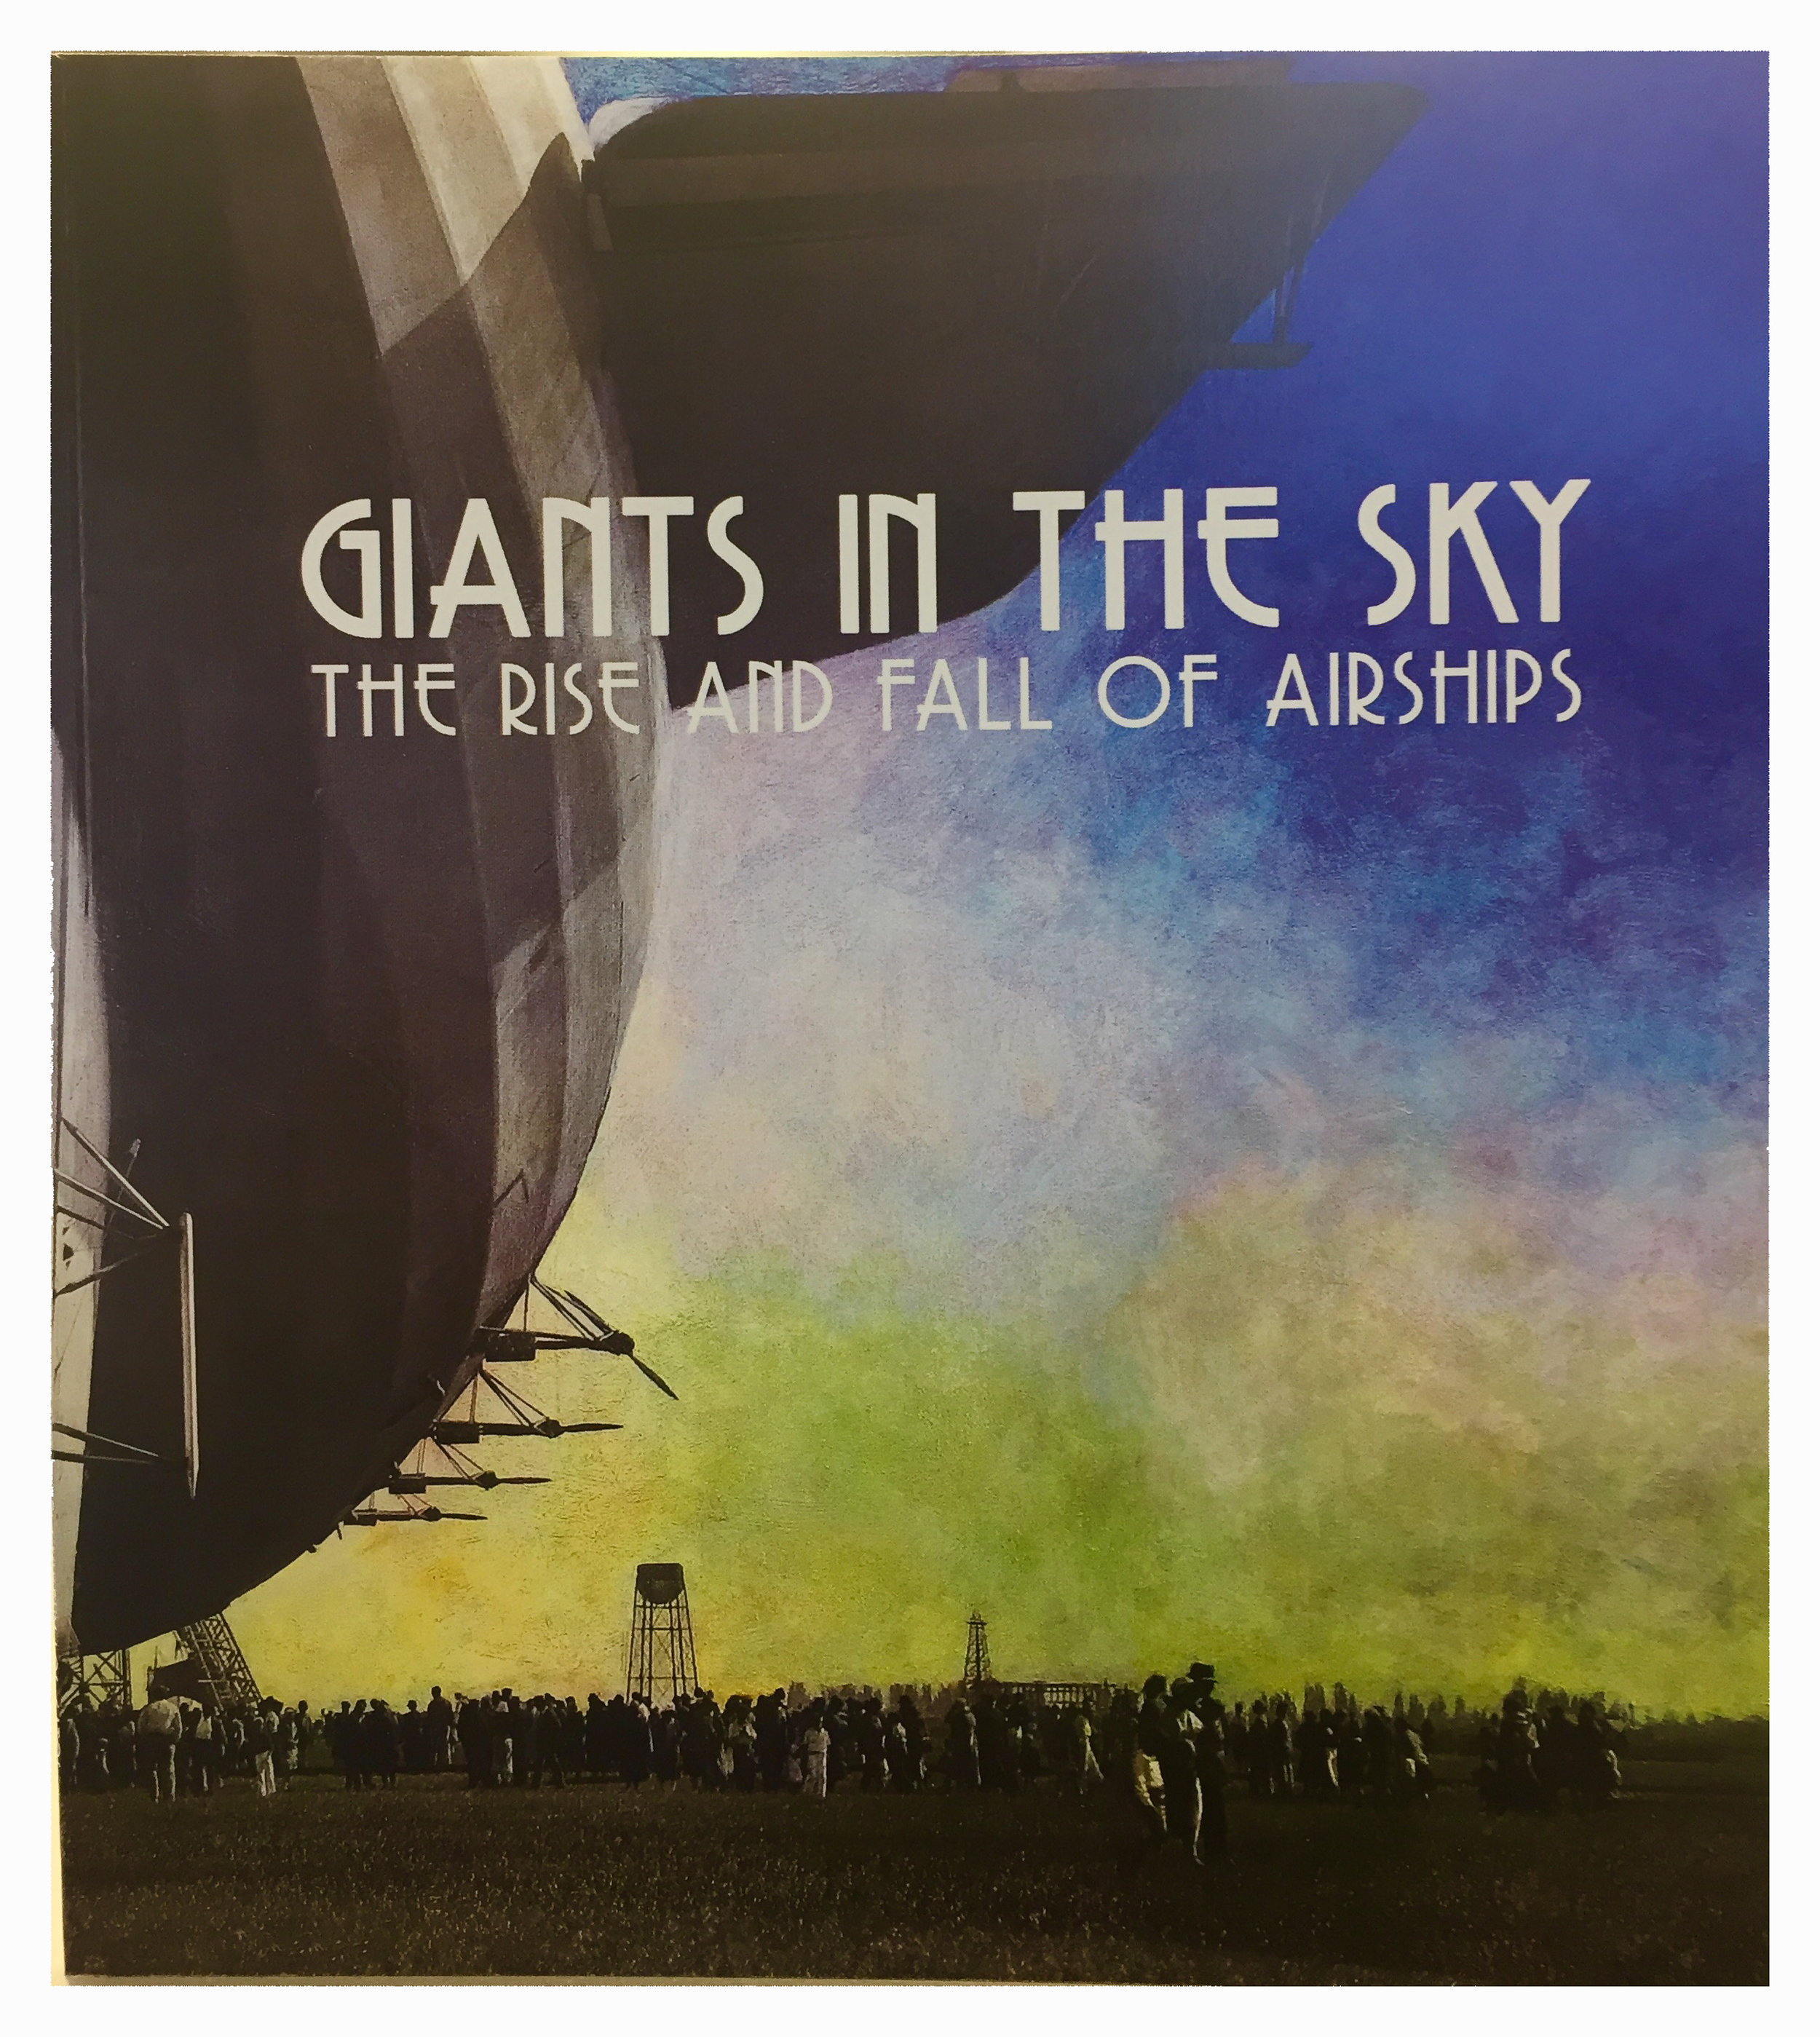 Giants in the Sky: The Rise and Fall of AirShips available at New Museum Los Gatos